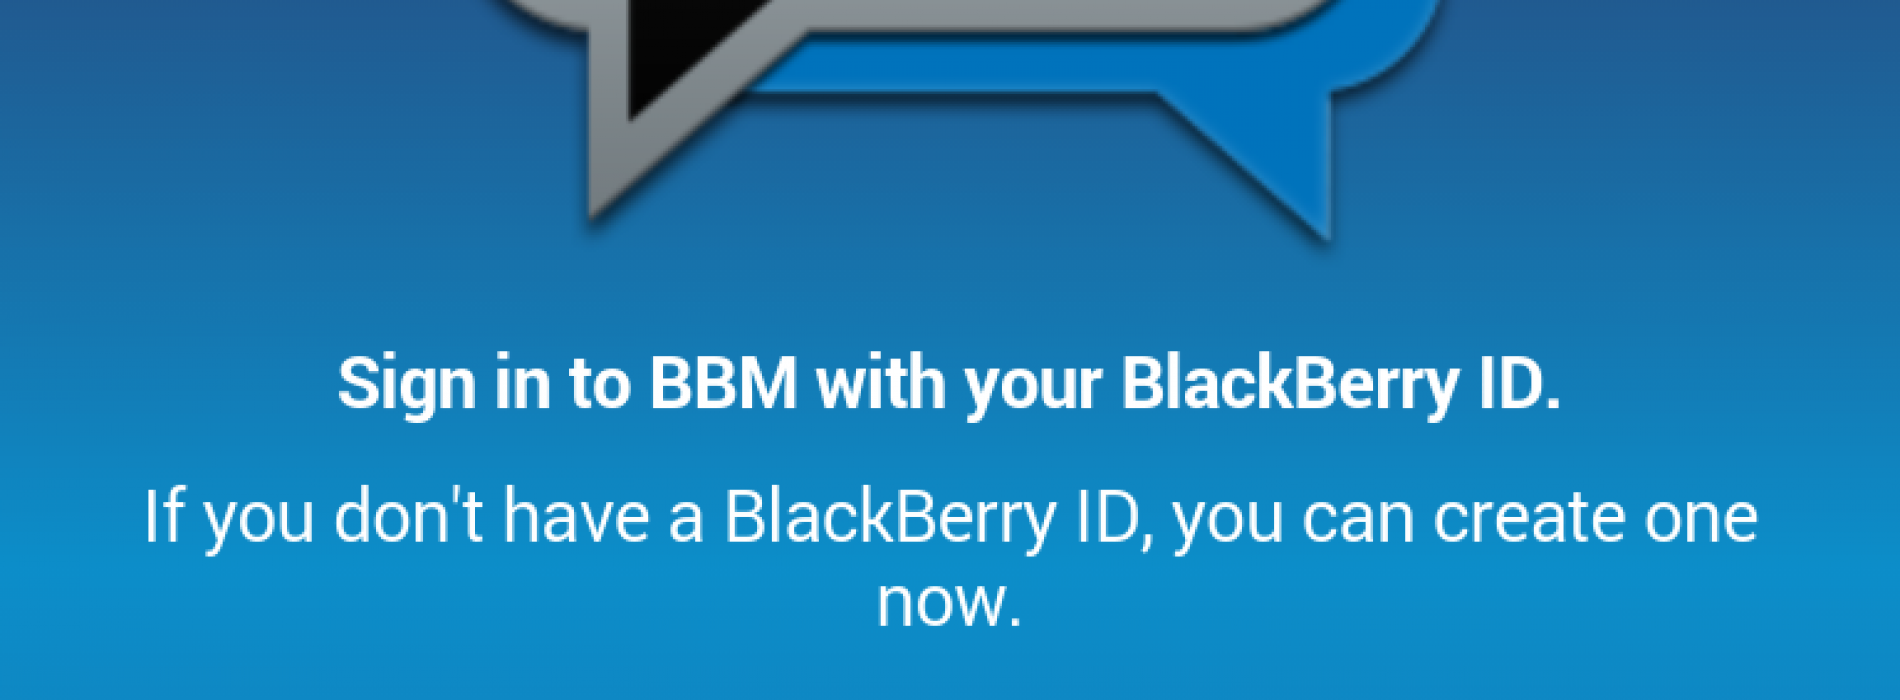 BBM for Android leaks; you can't use it